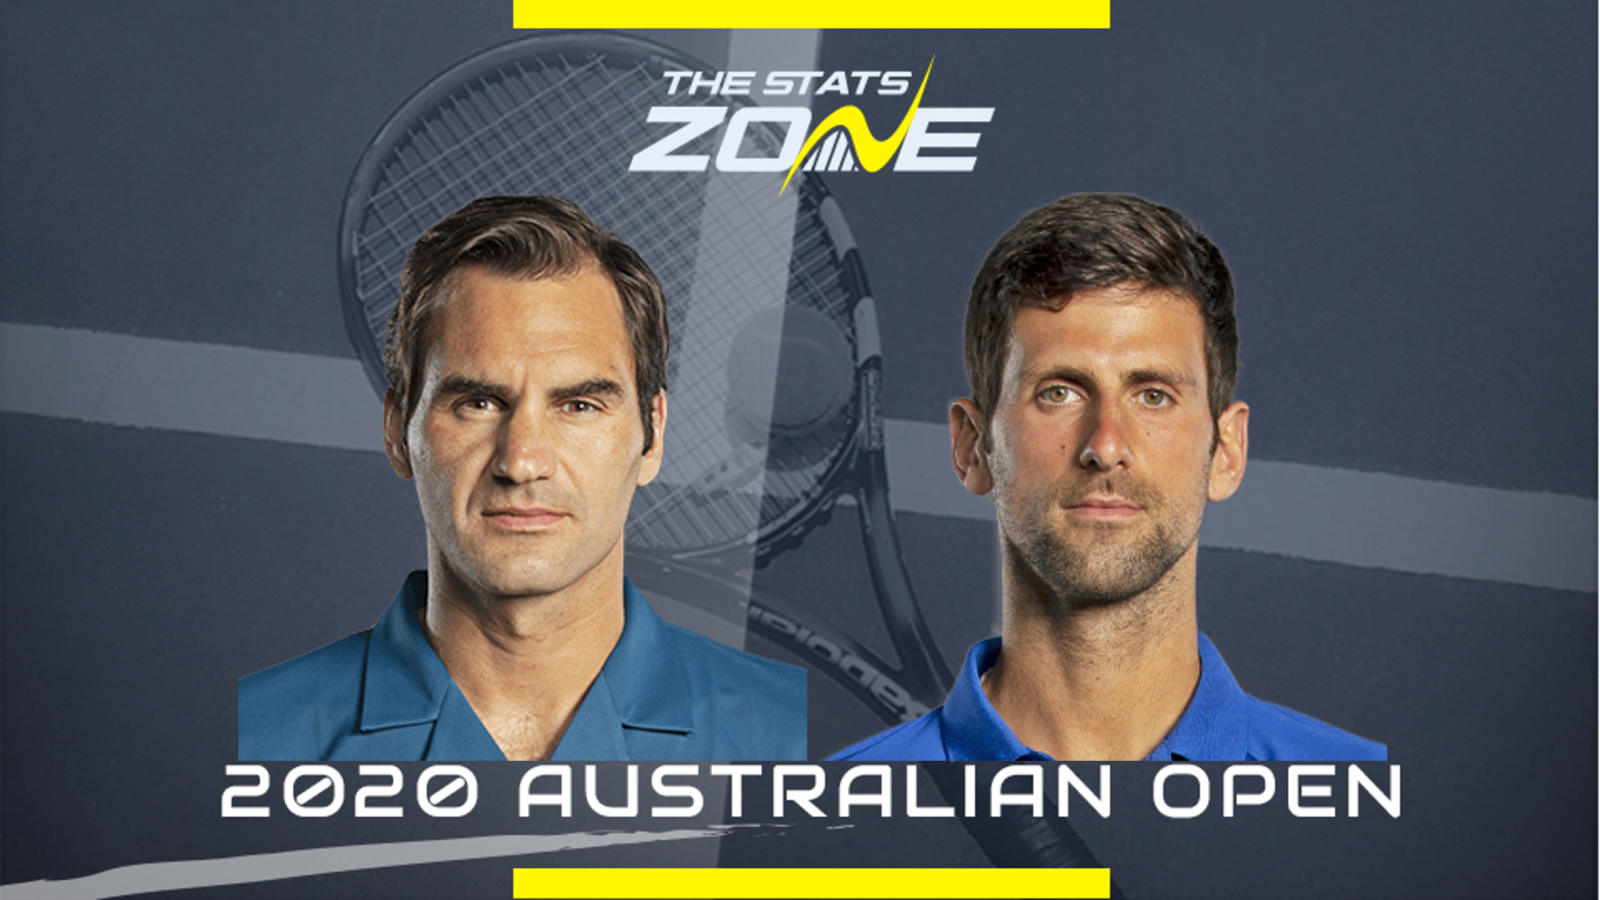 2020 Australian Open Roger Federer vs Novak Djokovic Preview 1600x900